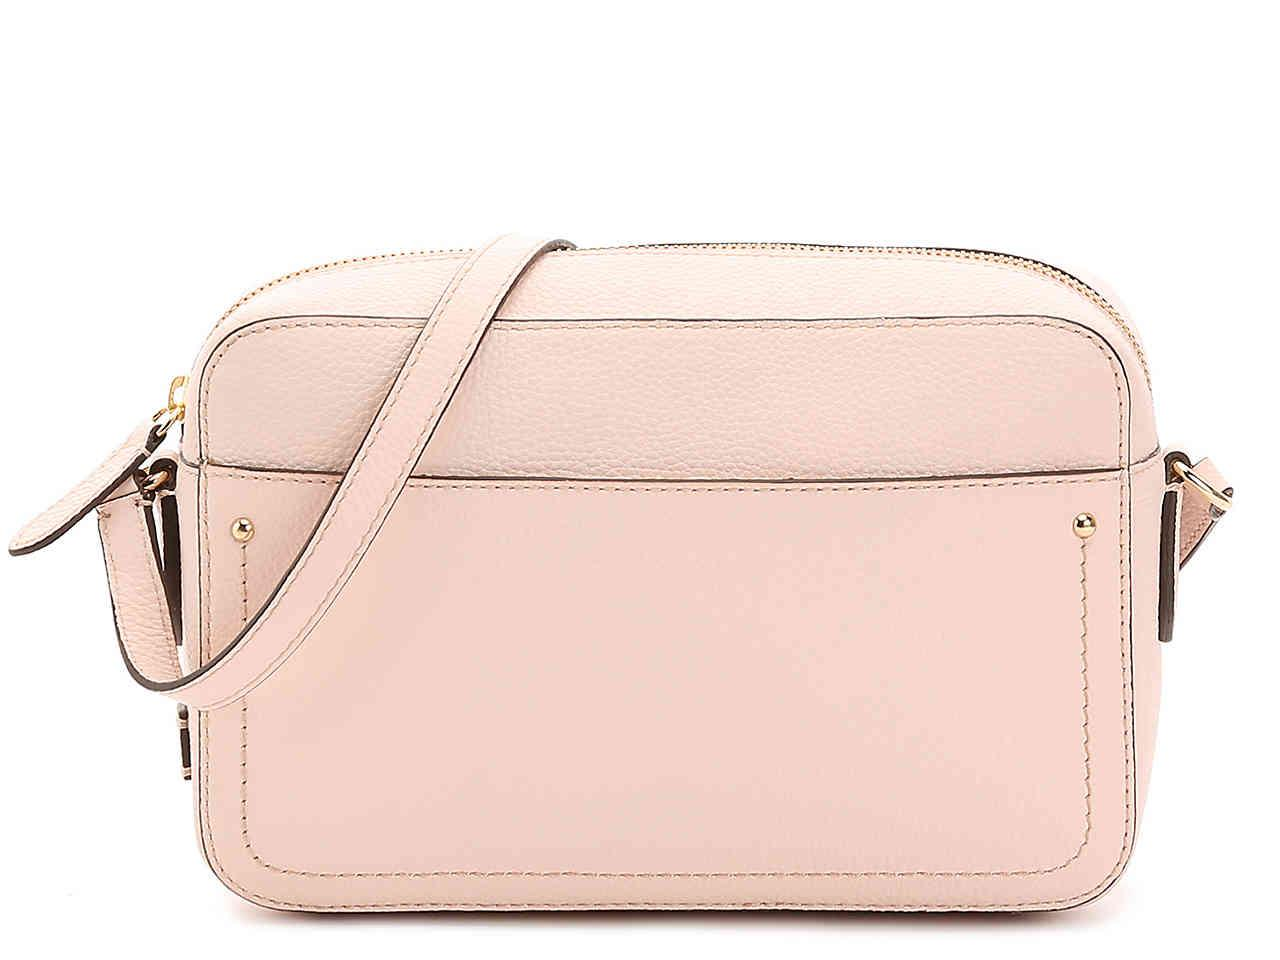 b59d730d63f Gallery. Previously sold at: DSW · Women's Camera Bags Women's Leather ...